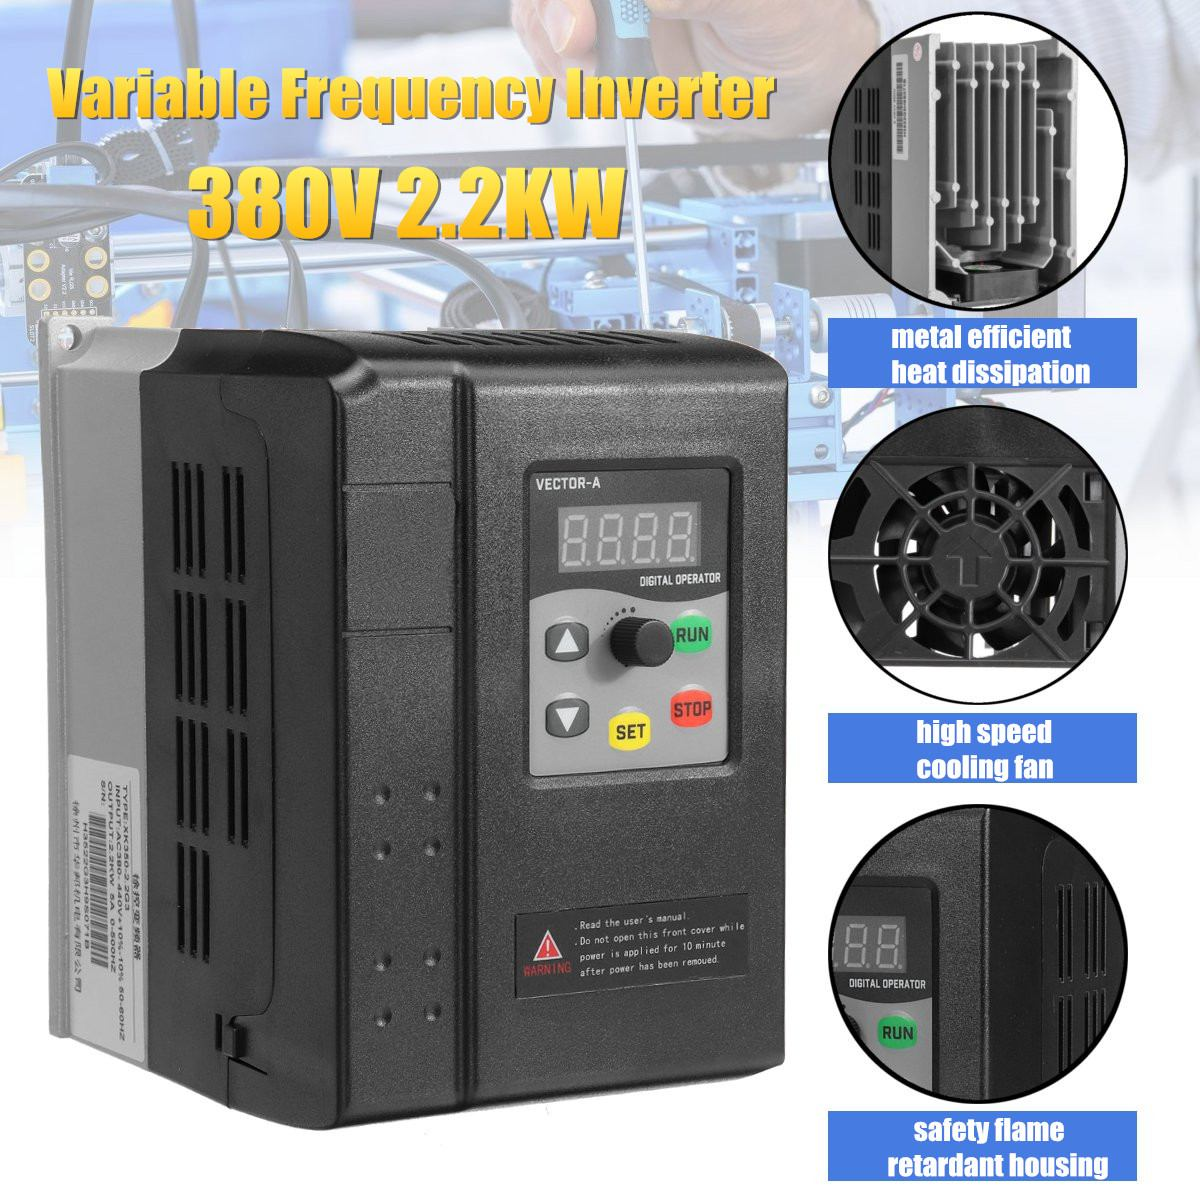 CNC Spindle motor speed control 380V 2.2KW VFD Variable Frequency Drive VFD 3 Phase frequency inverter For Motor NEWCNC Spindle motor speed control 380V 2.2KW VFD Variable Frequency Drive VFD 3 Phase frequency inverter For Motor NEW